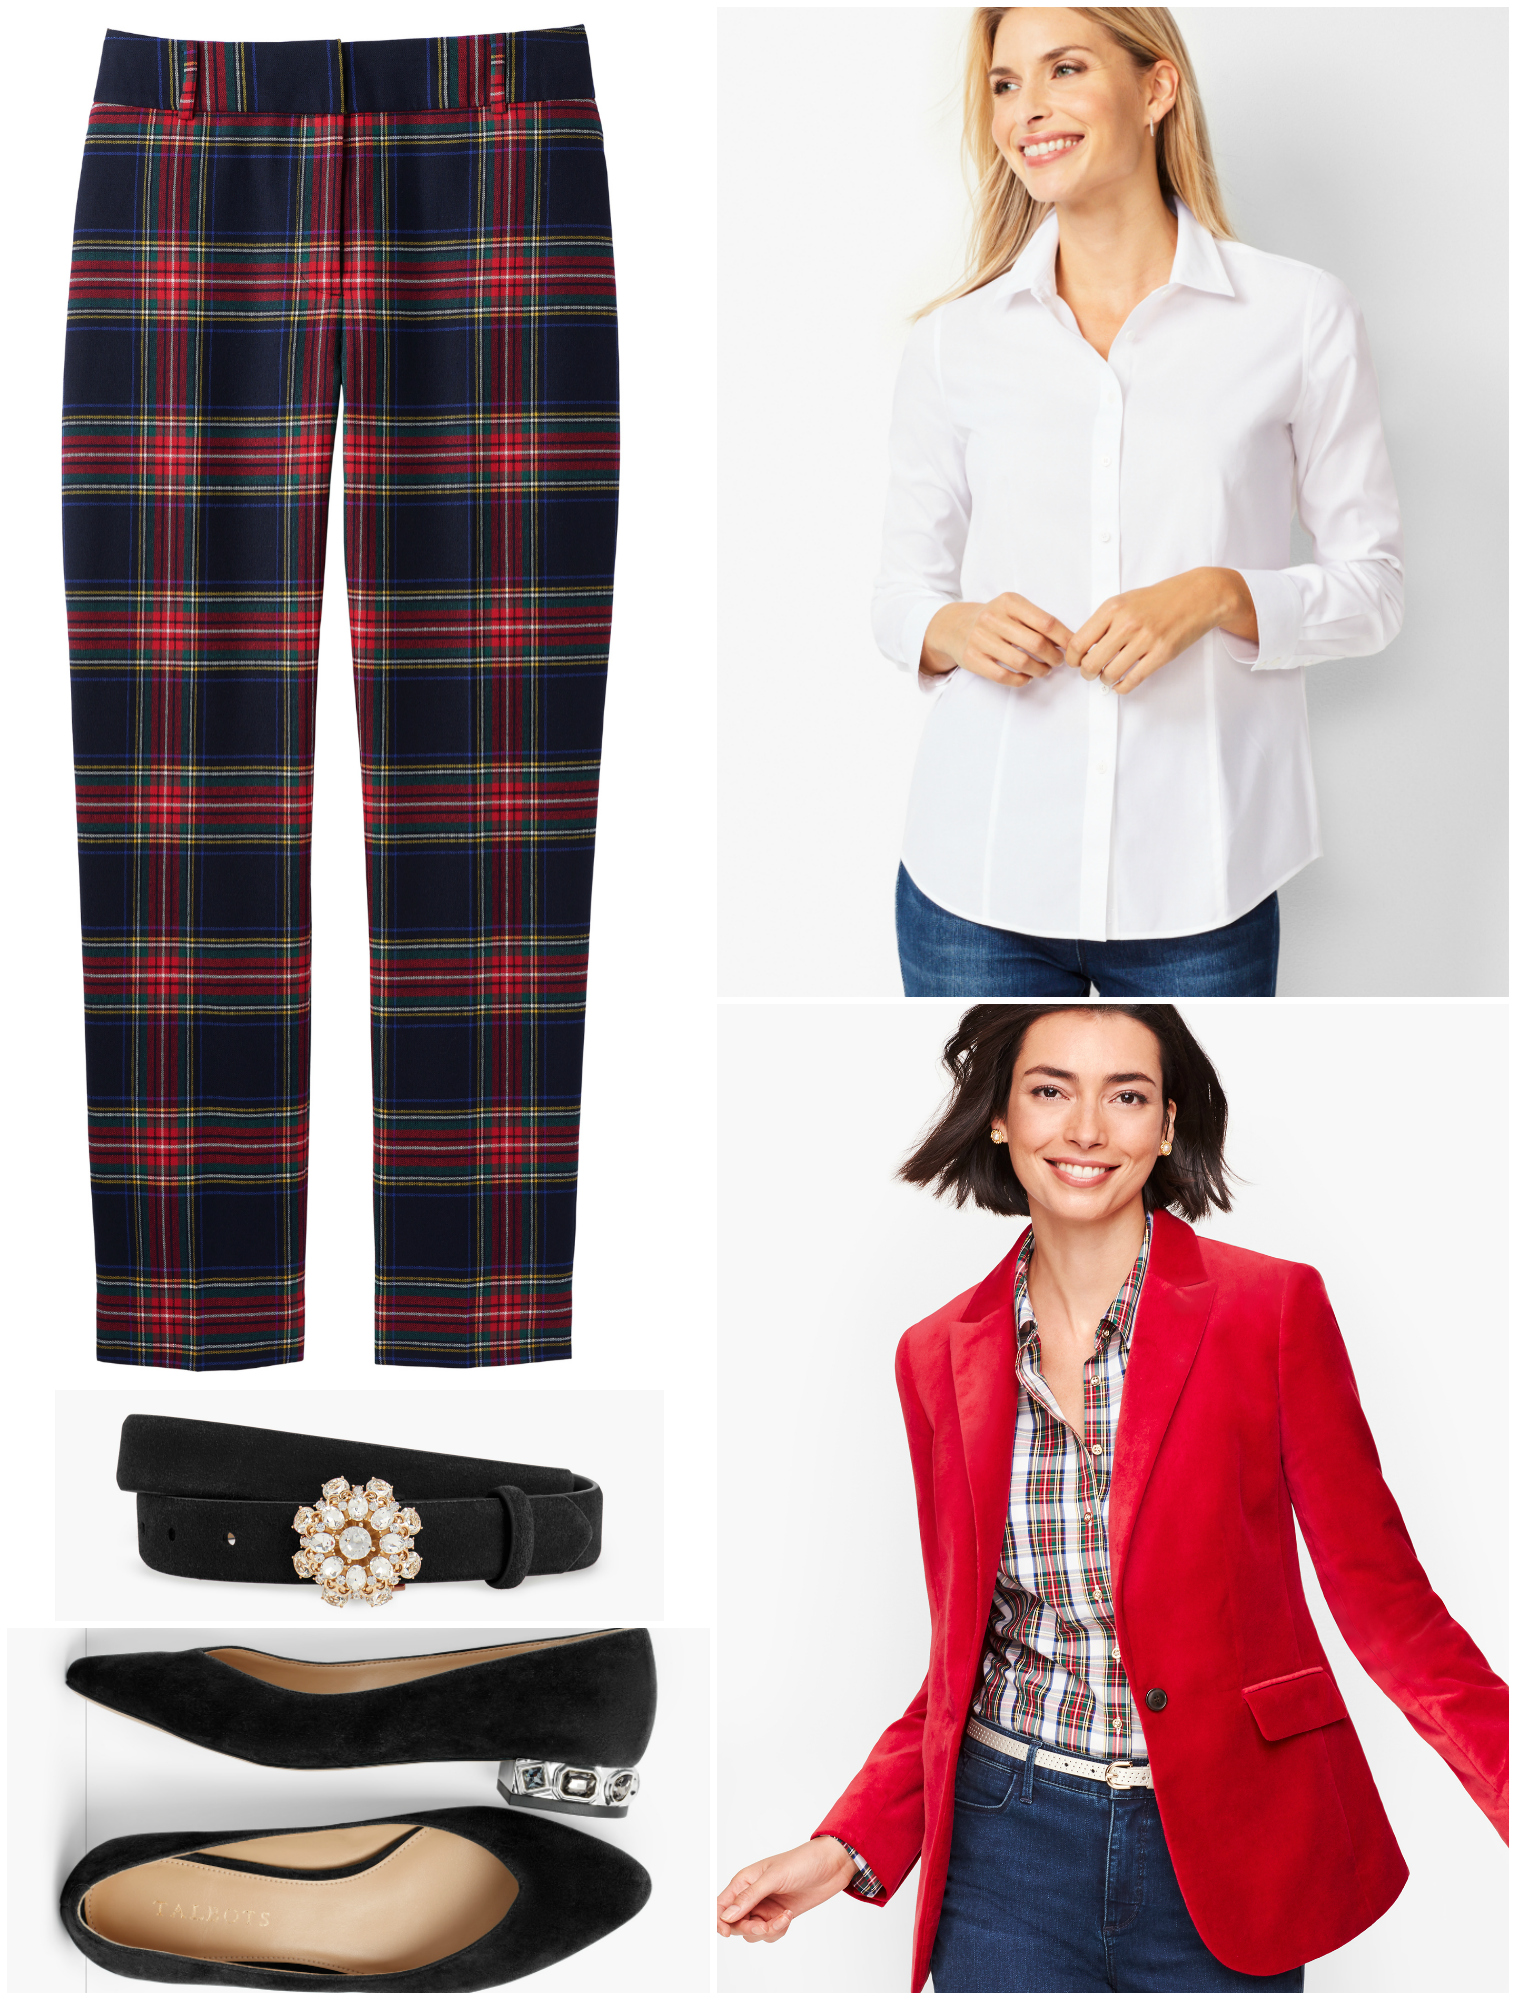 A festive pantsuit is created by adding a red velvet blazer.  Push up the sleeves and unbutton the first two buttons of the shirt for a more relaxed vibe.